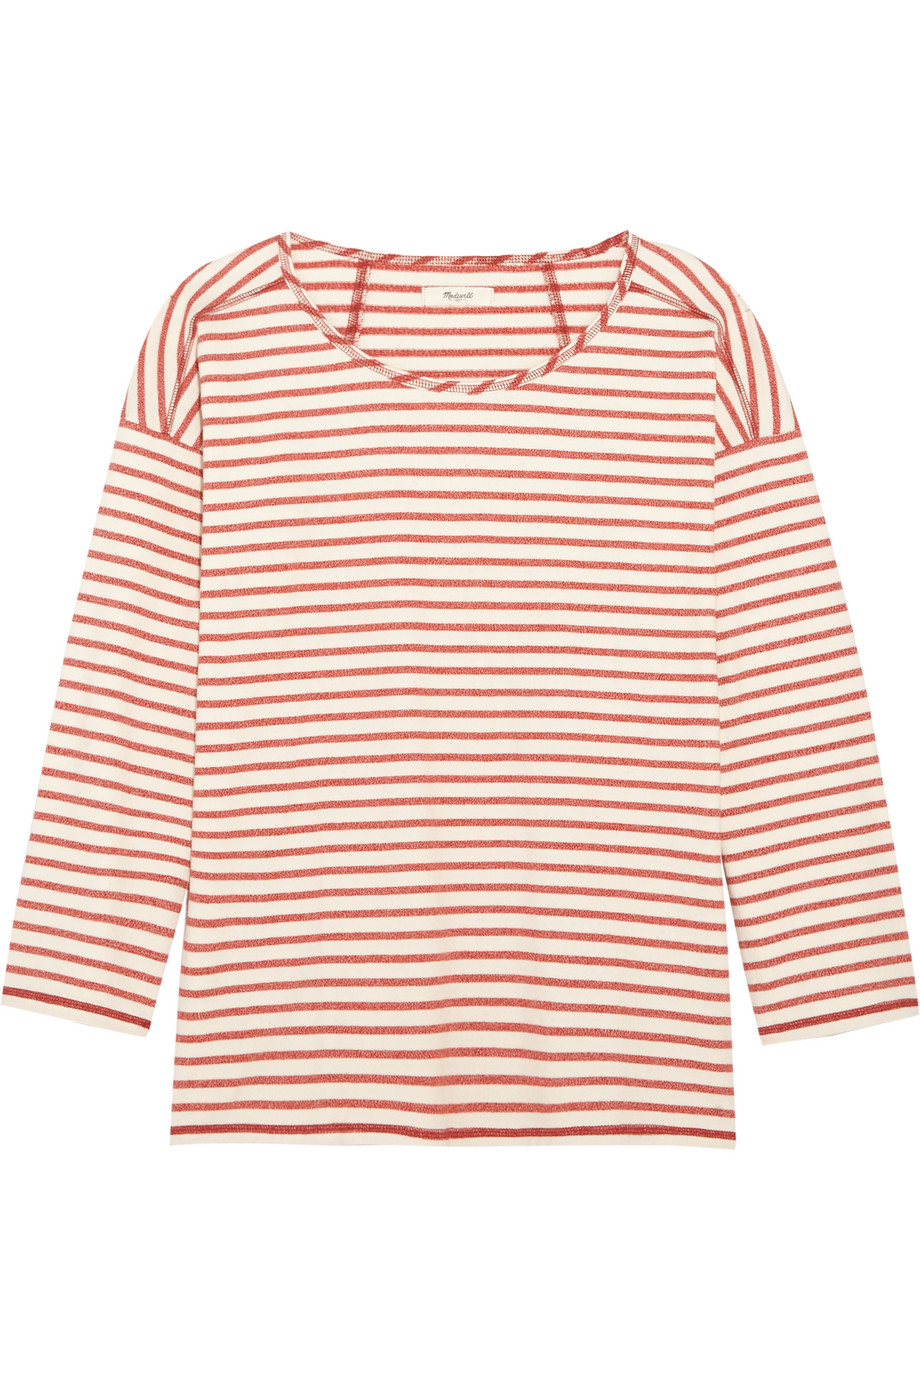 Madewell Gloria Striped Cotton-Jersey Top, Red/White, Women's, Size: L